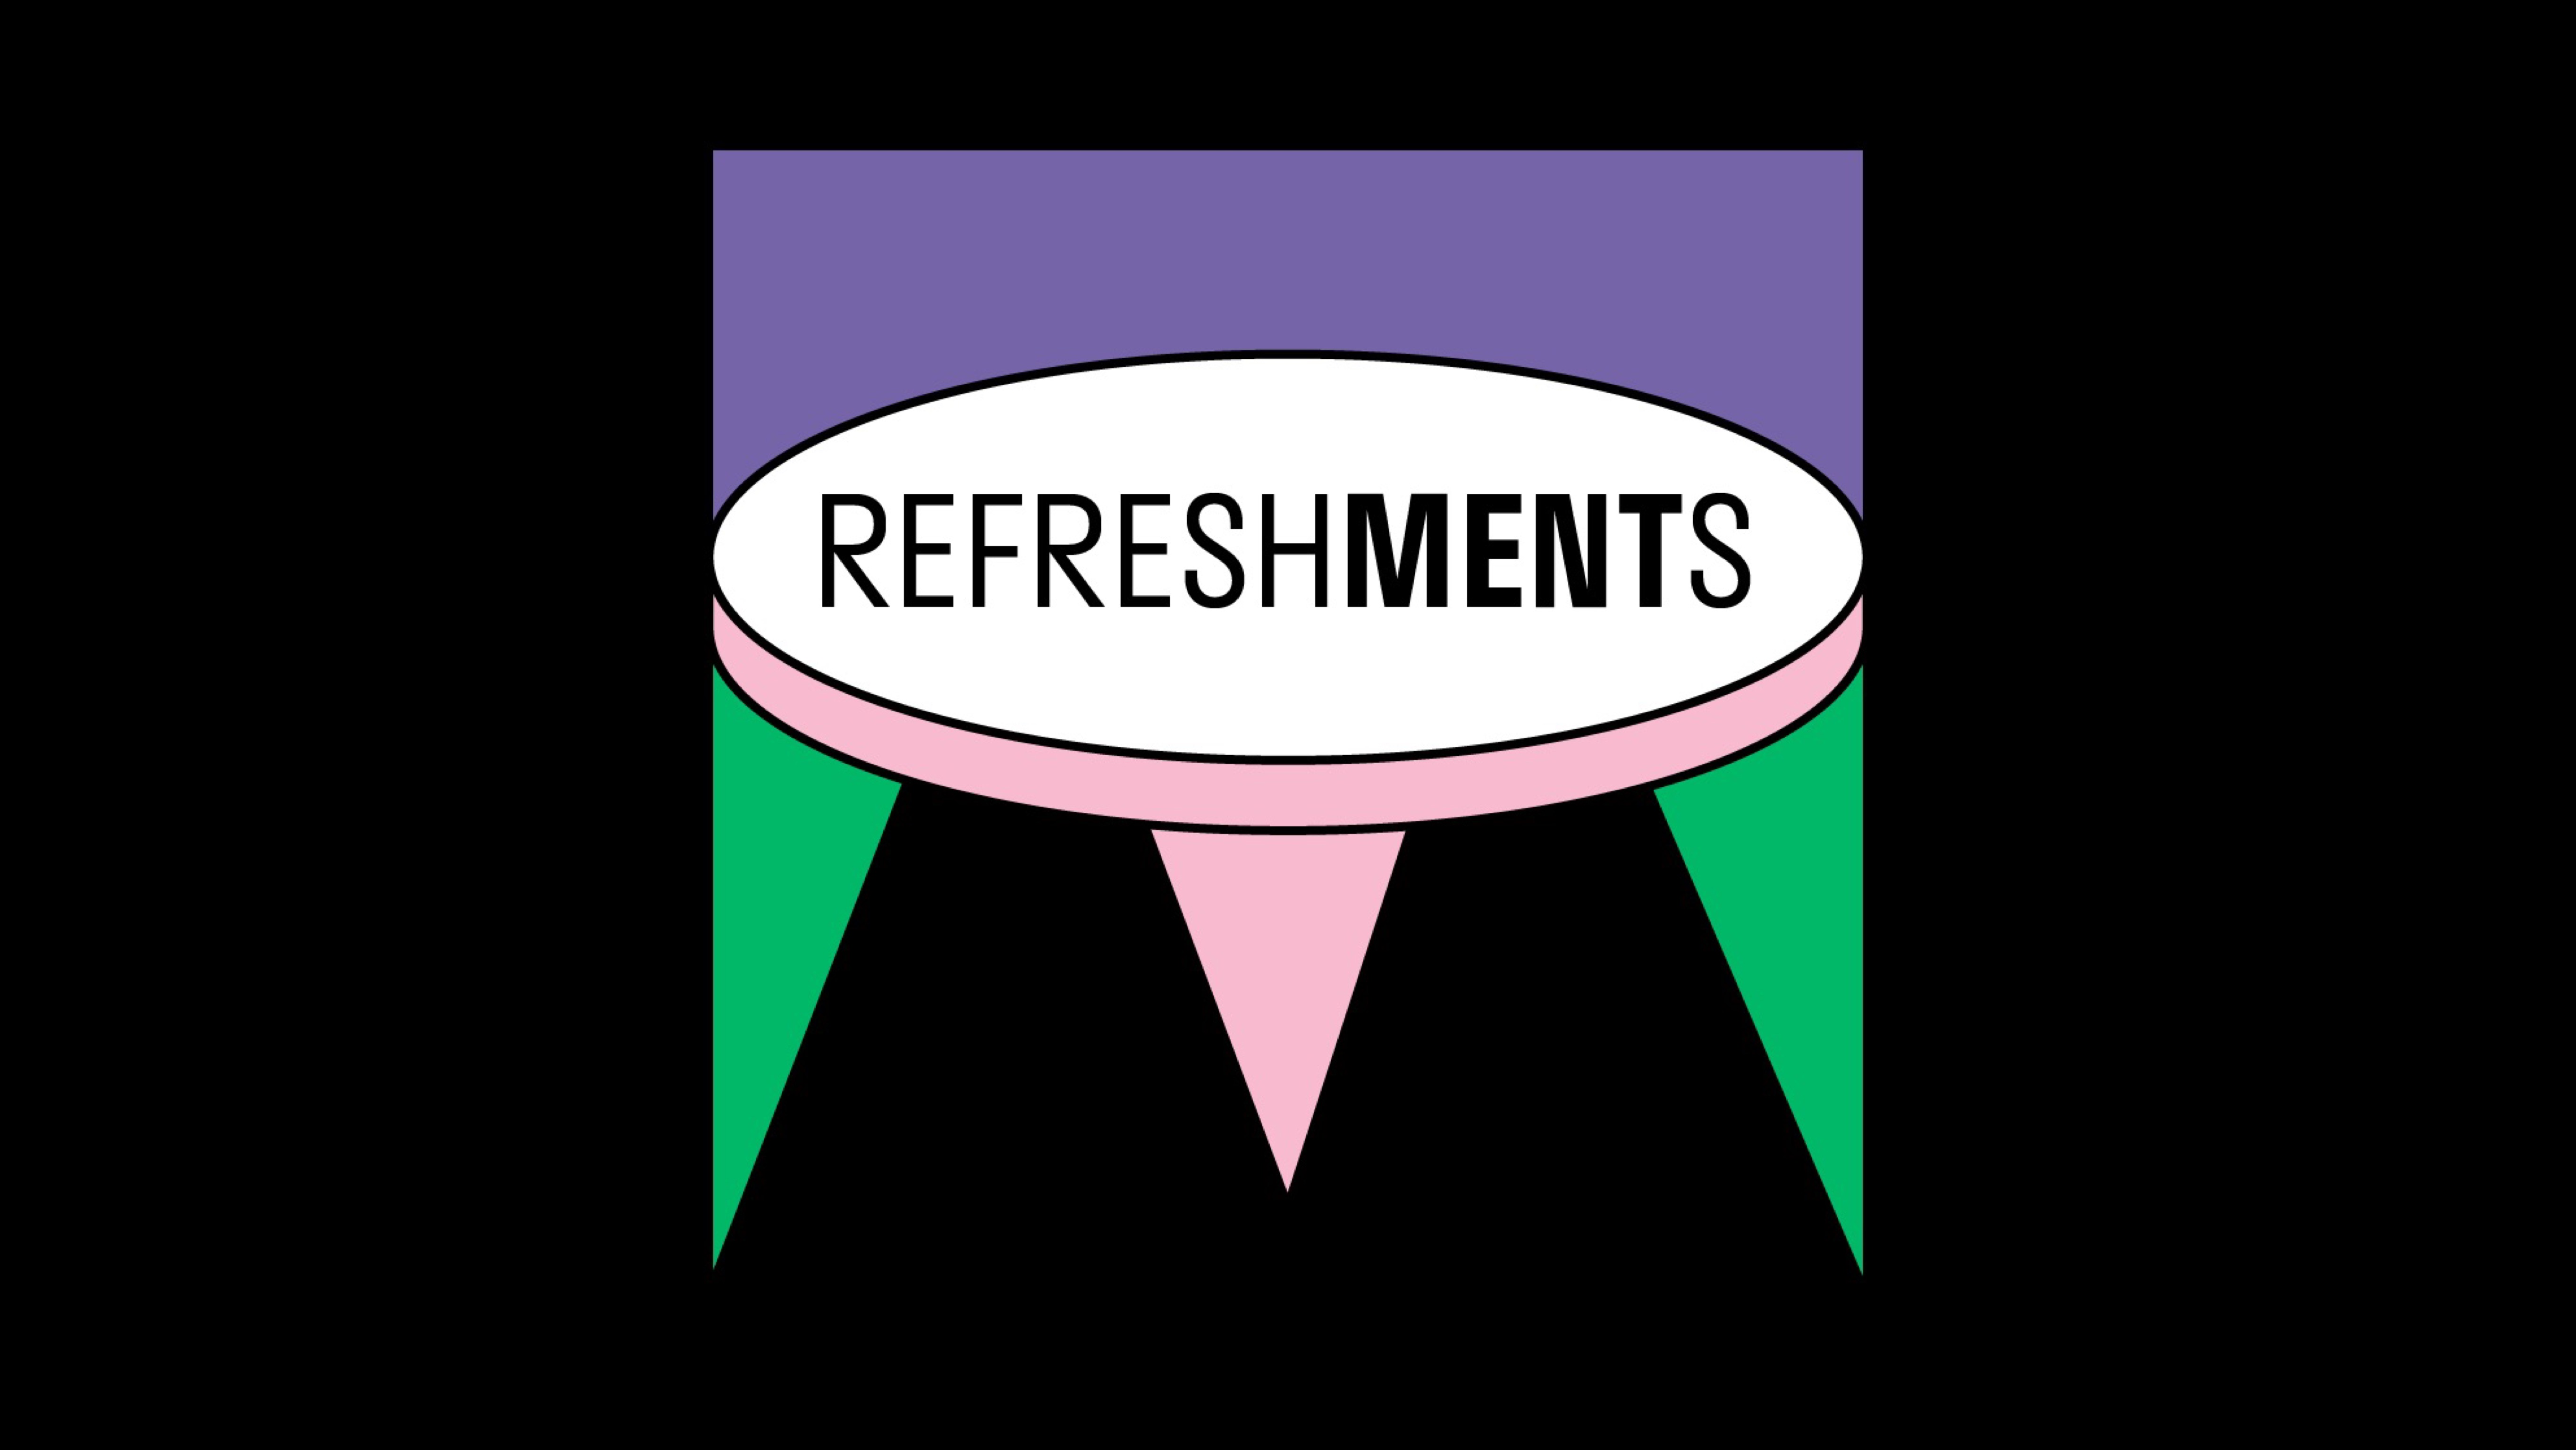 cover for the refreshments playlist - sign REFRESHMENTS and colors